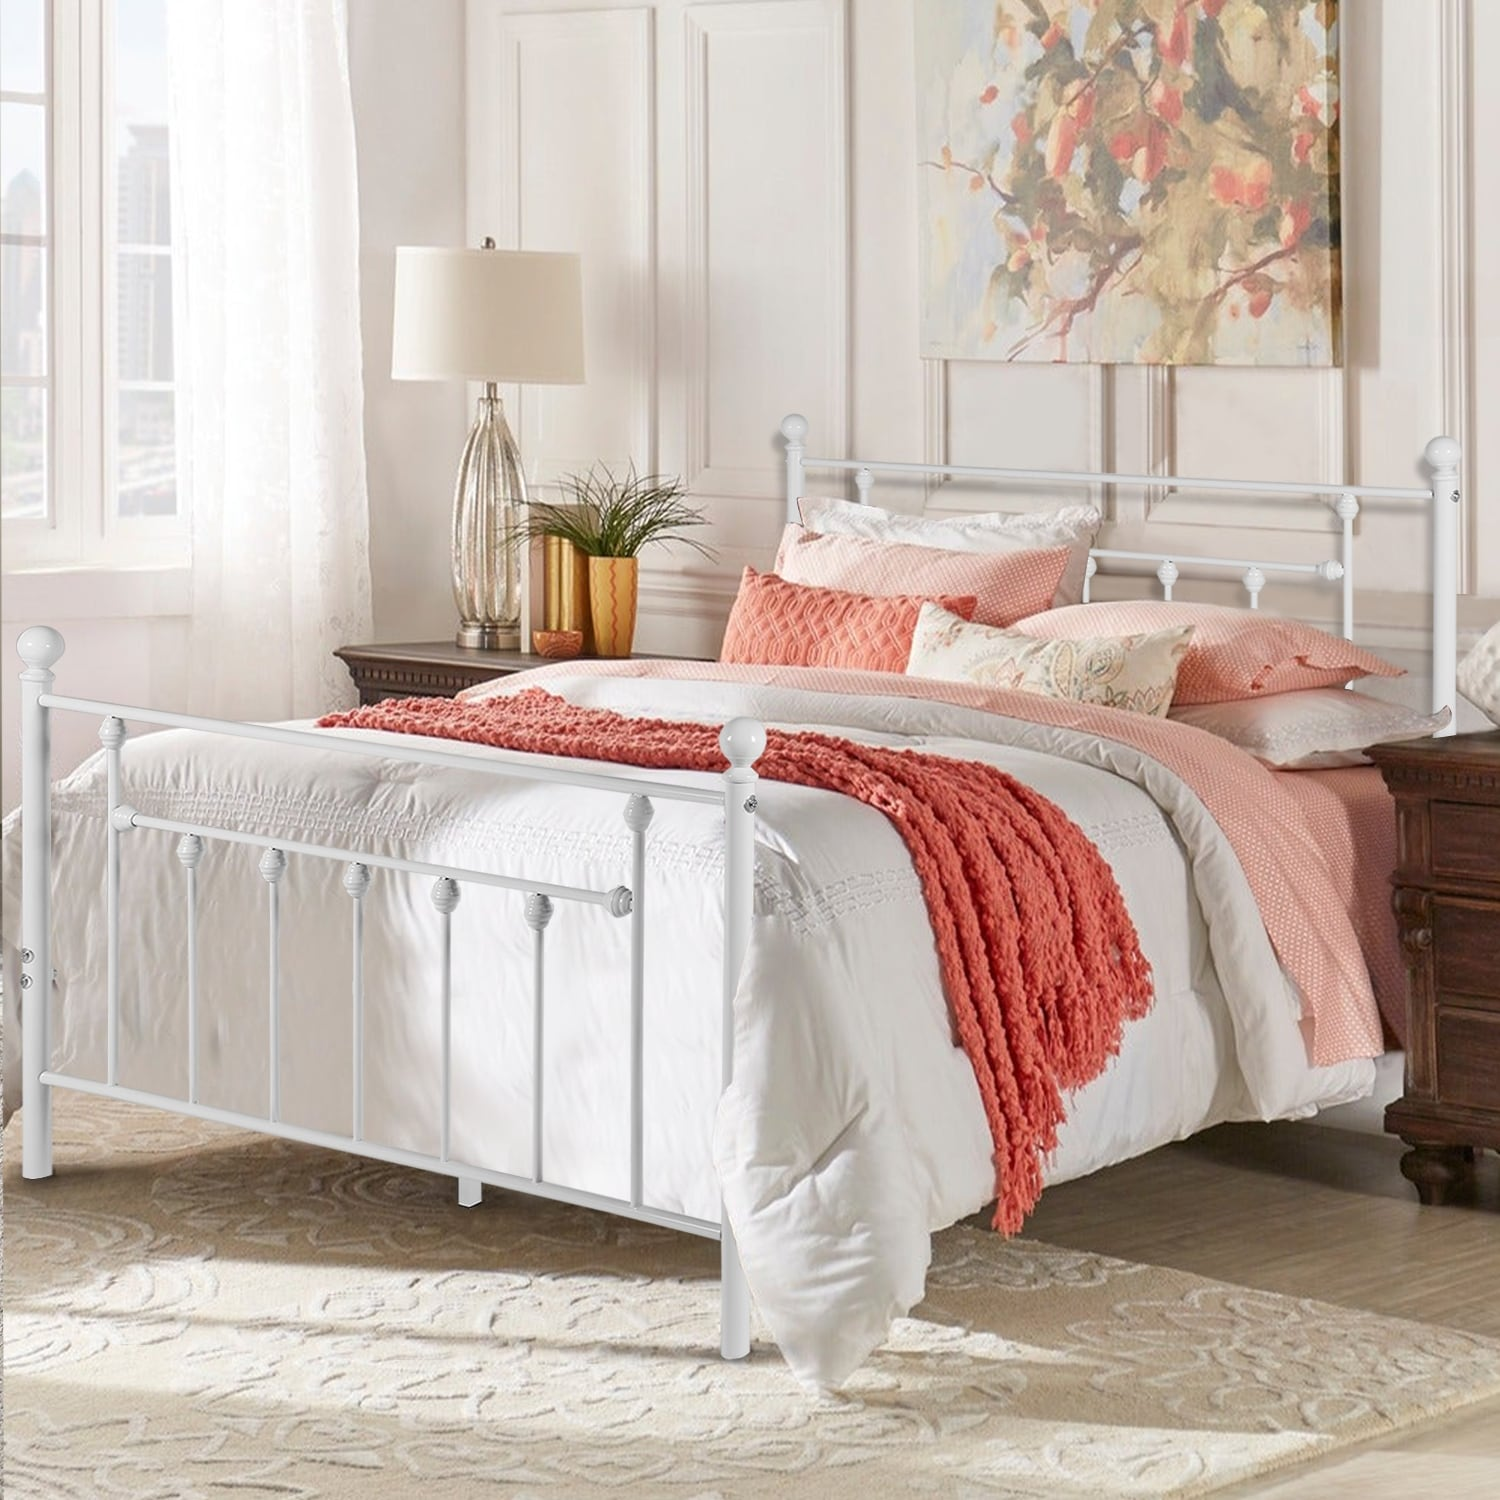 Vecelo Vintage Line Metal Bed Frame White Twin Full Queen Size 3 Opotion Overstock 29875431